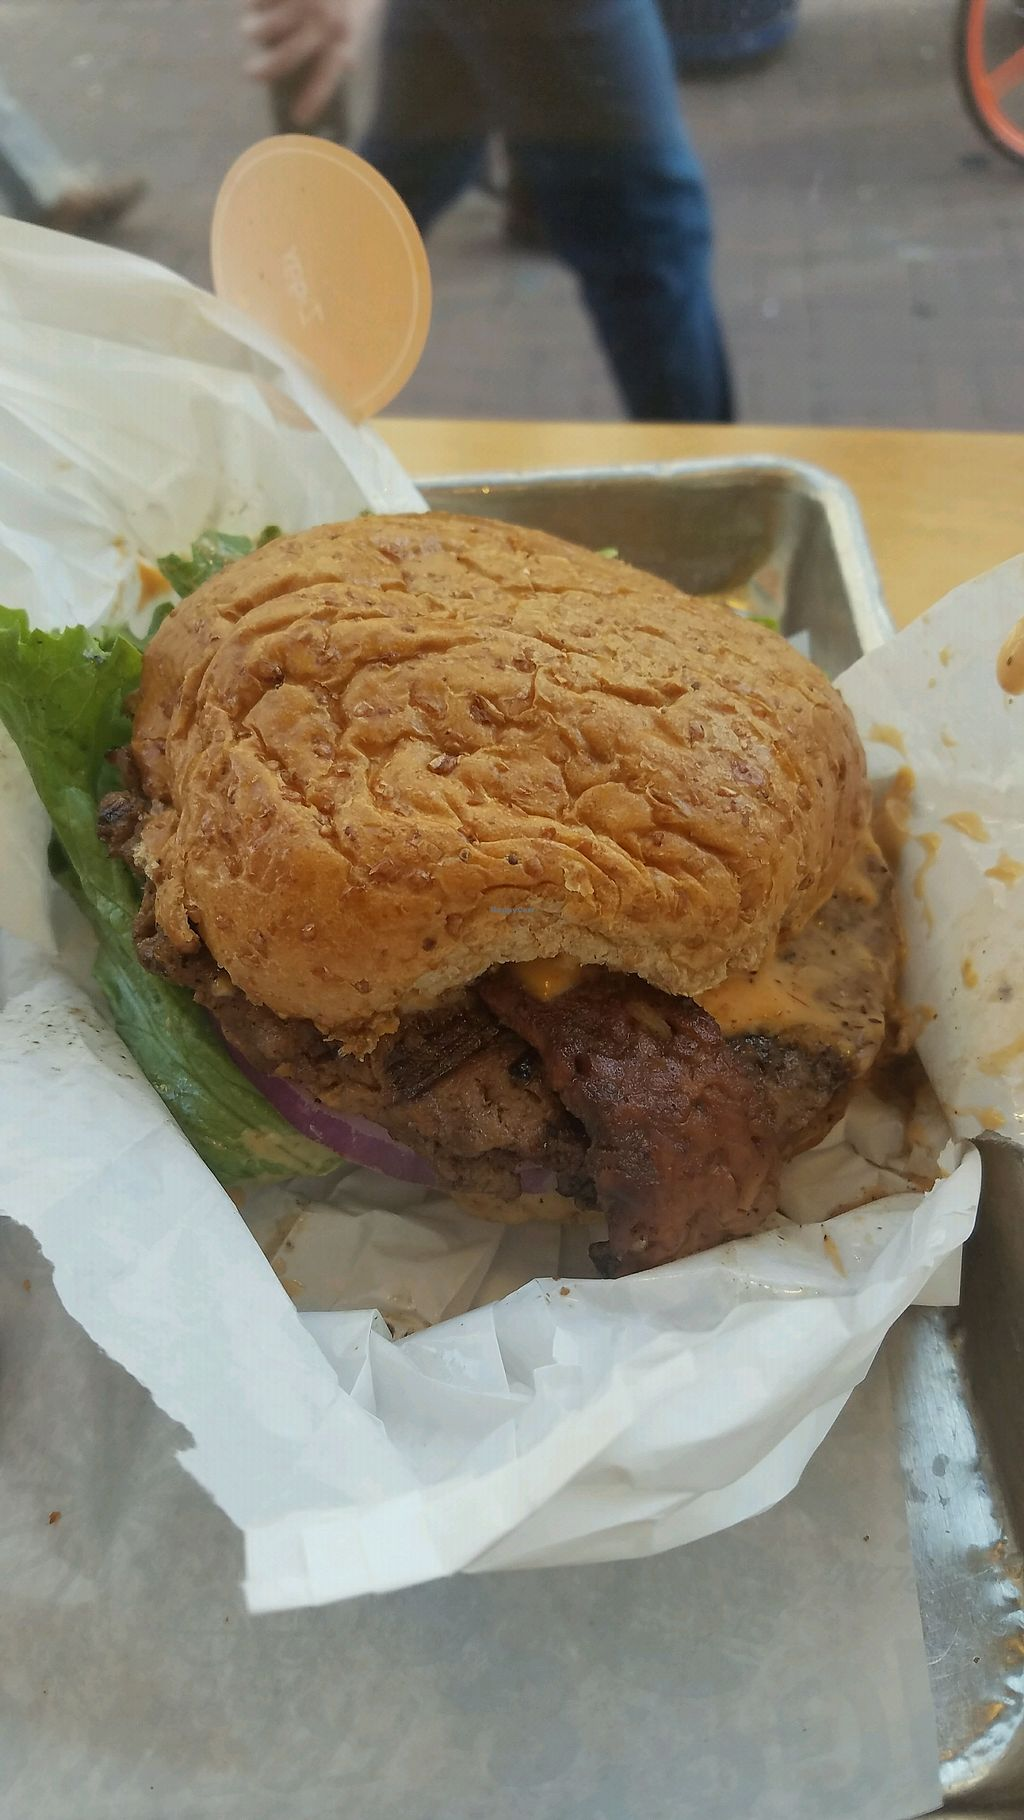 """Photo of HipCityVeg  by <a href=""""/members/profile/Sir.RyanJohnson"""">Sir.RyanJohnson</a> <br/>ziggy burger <br/> December 16, 2017  - <a href='/contact/abuse/image/74759/336189'>Report</a>"""